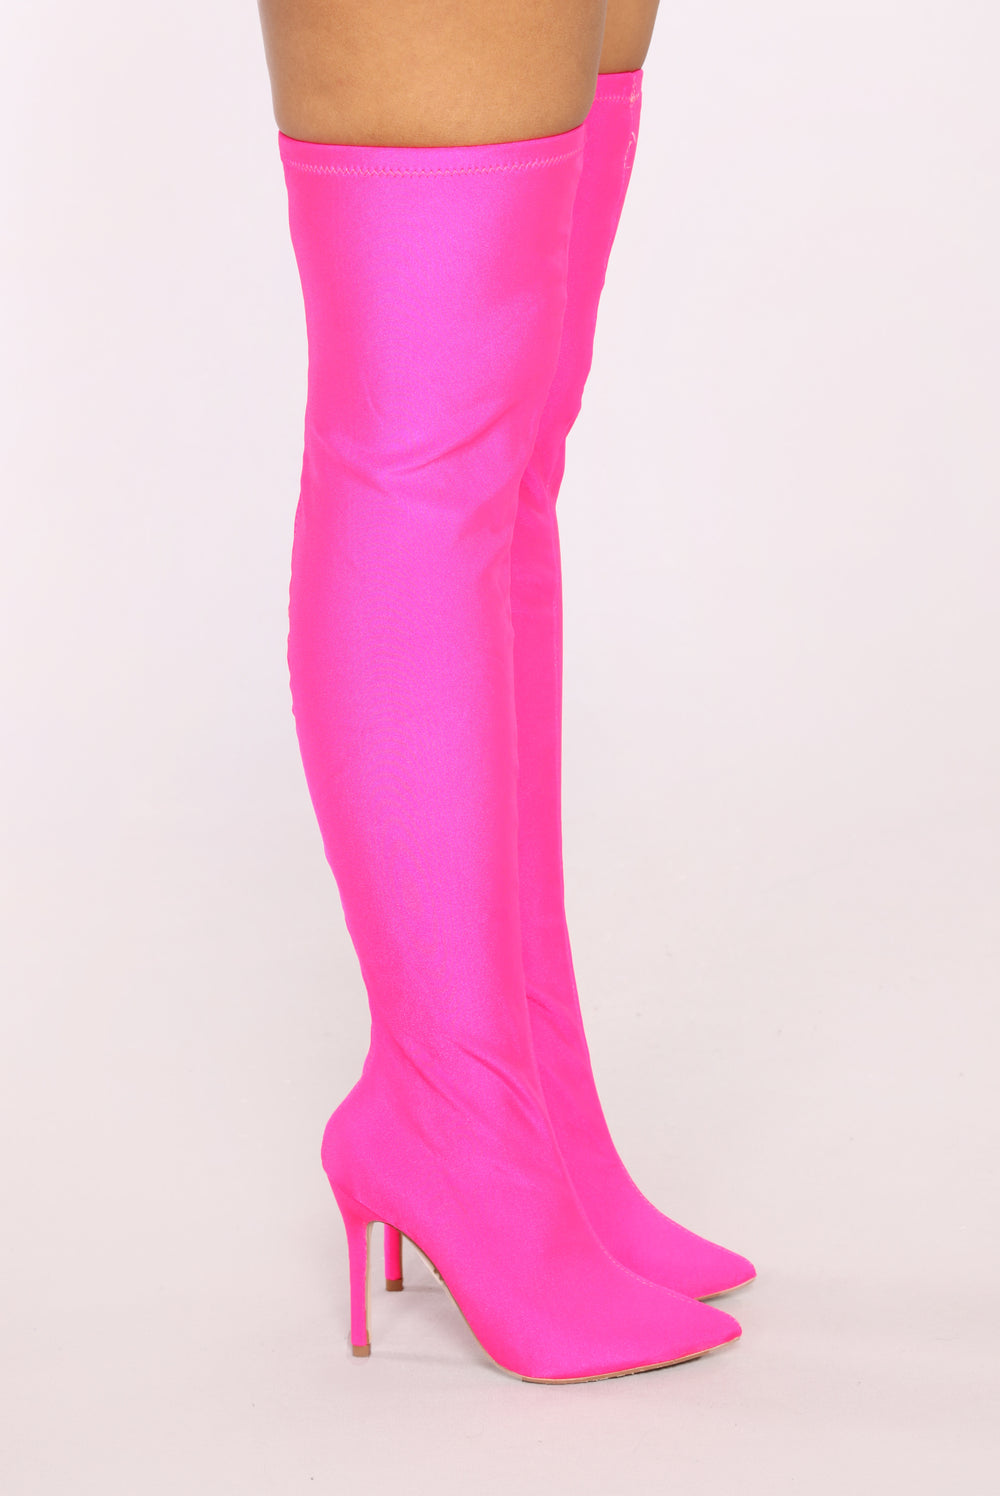 Lost In Your World Boot - Pink